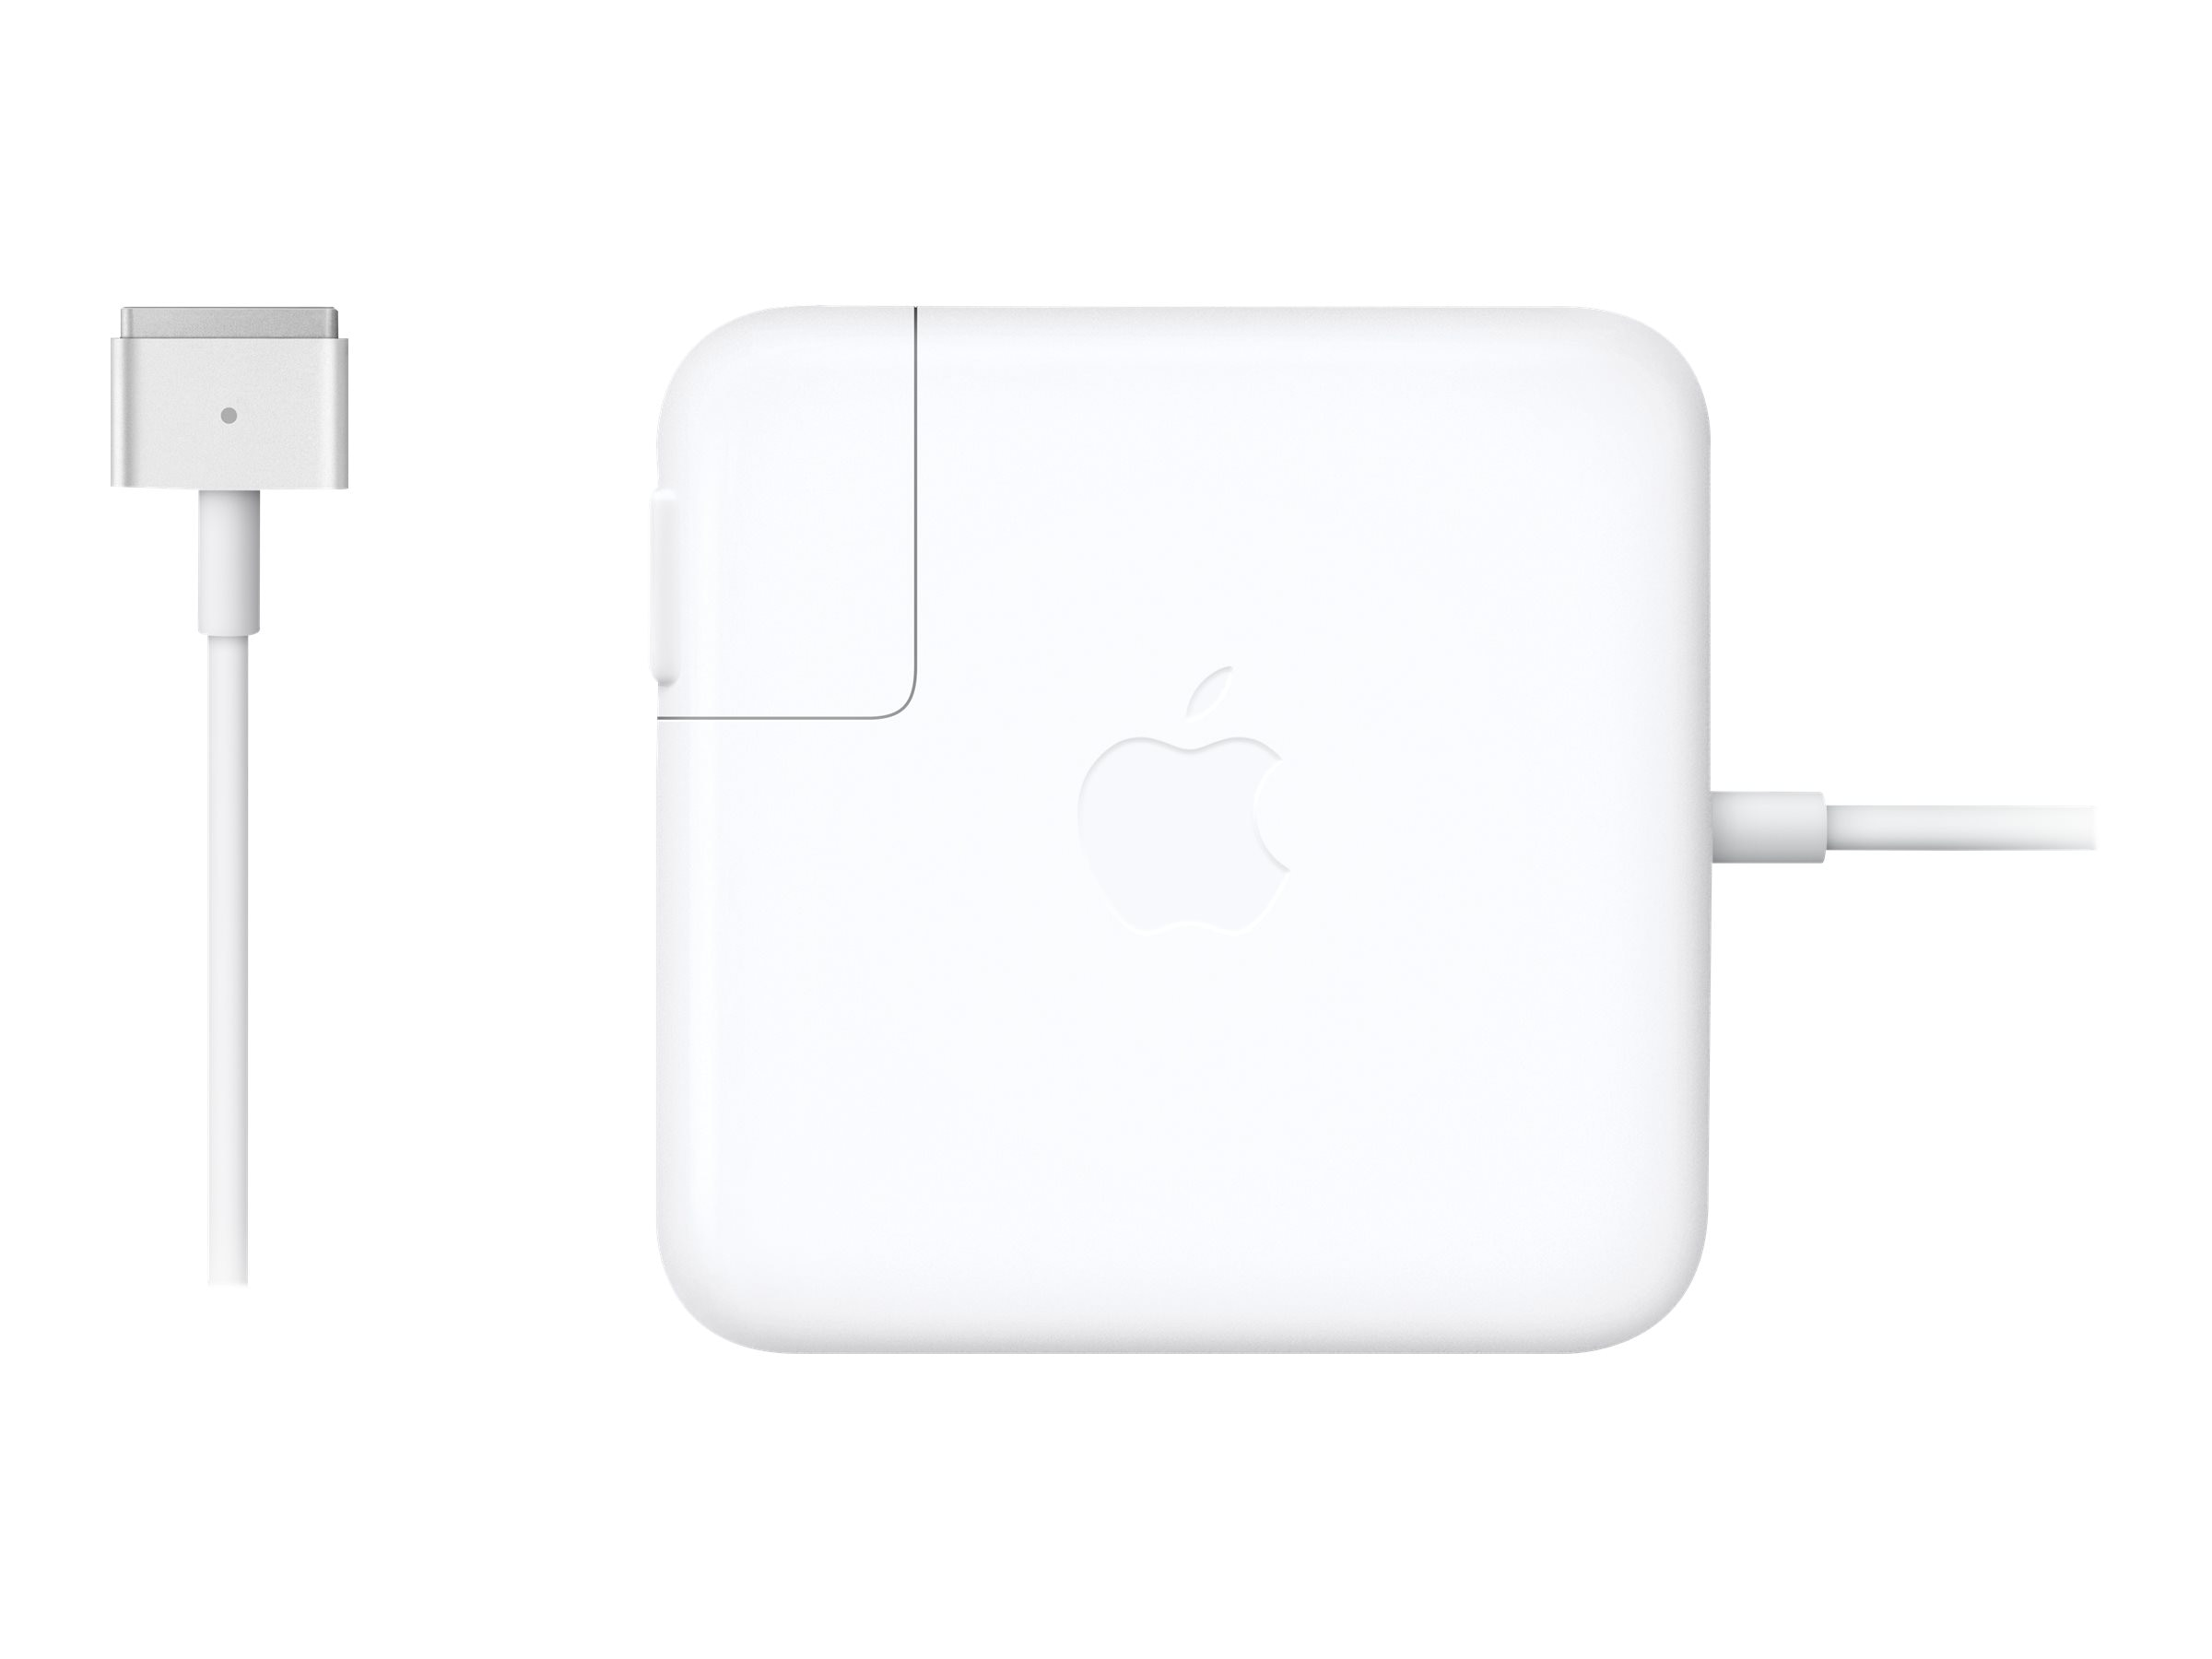 Recon. Apple 60W MagSafe 2 Power Adapter for MacBook Pro 13 Retina Display